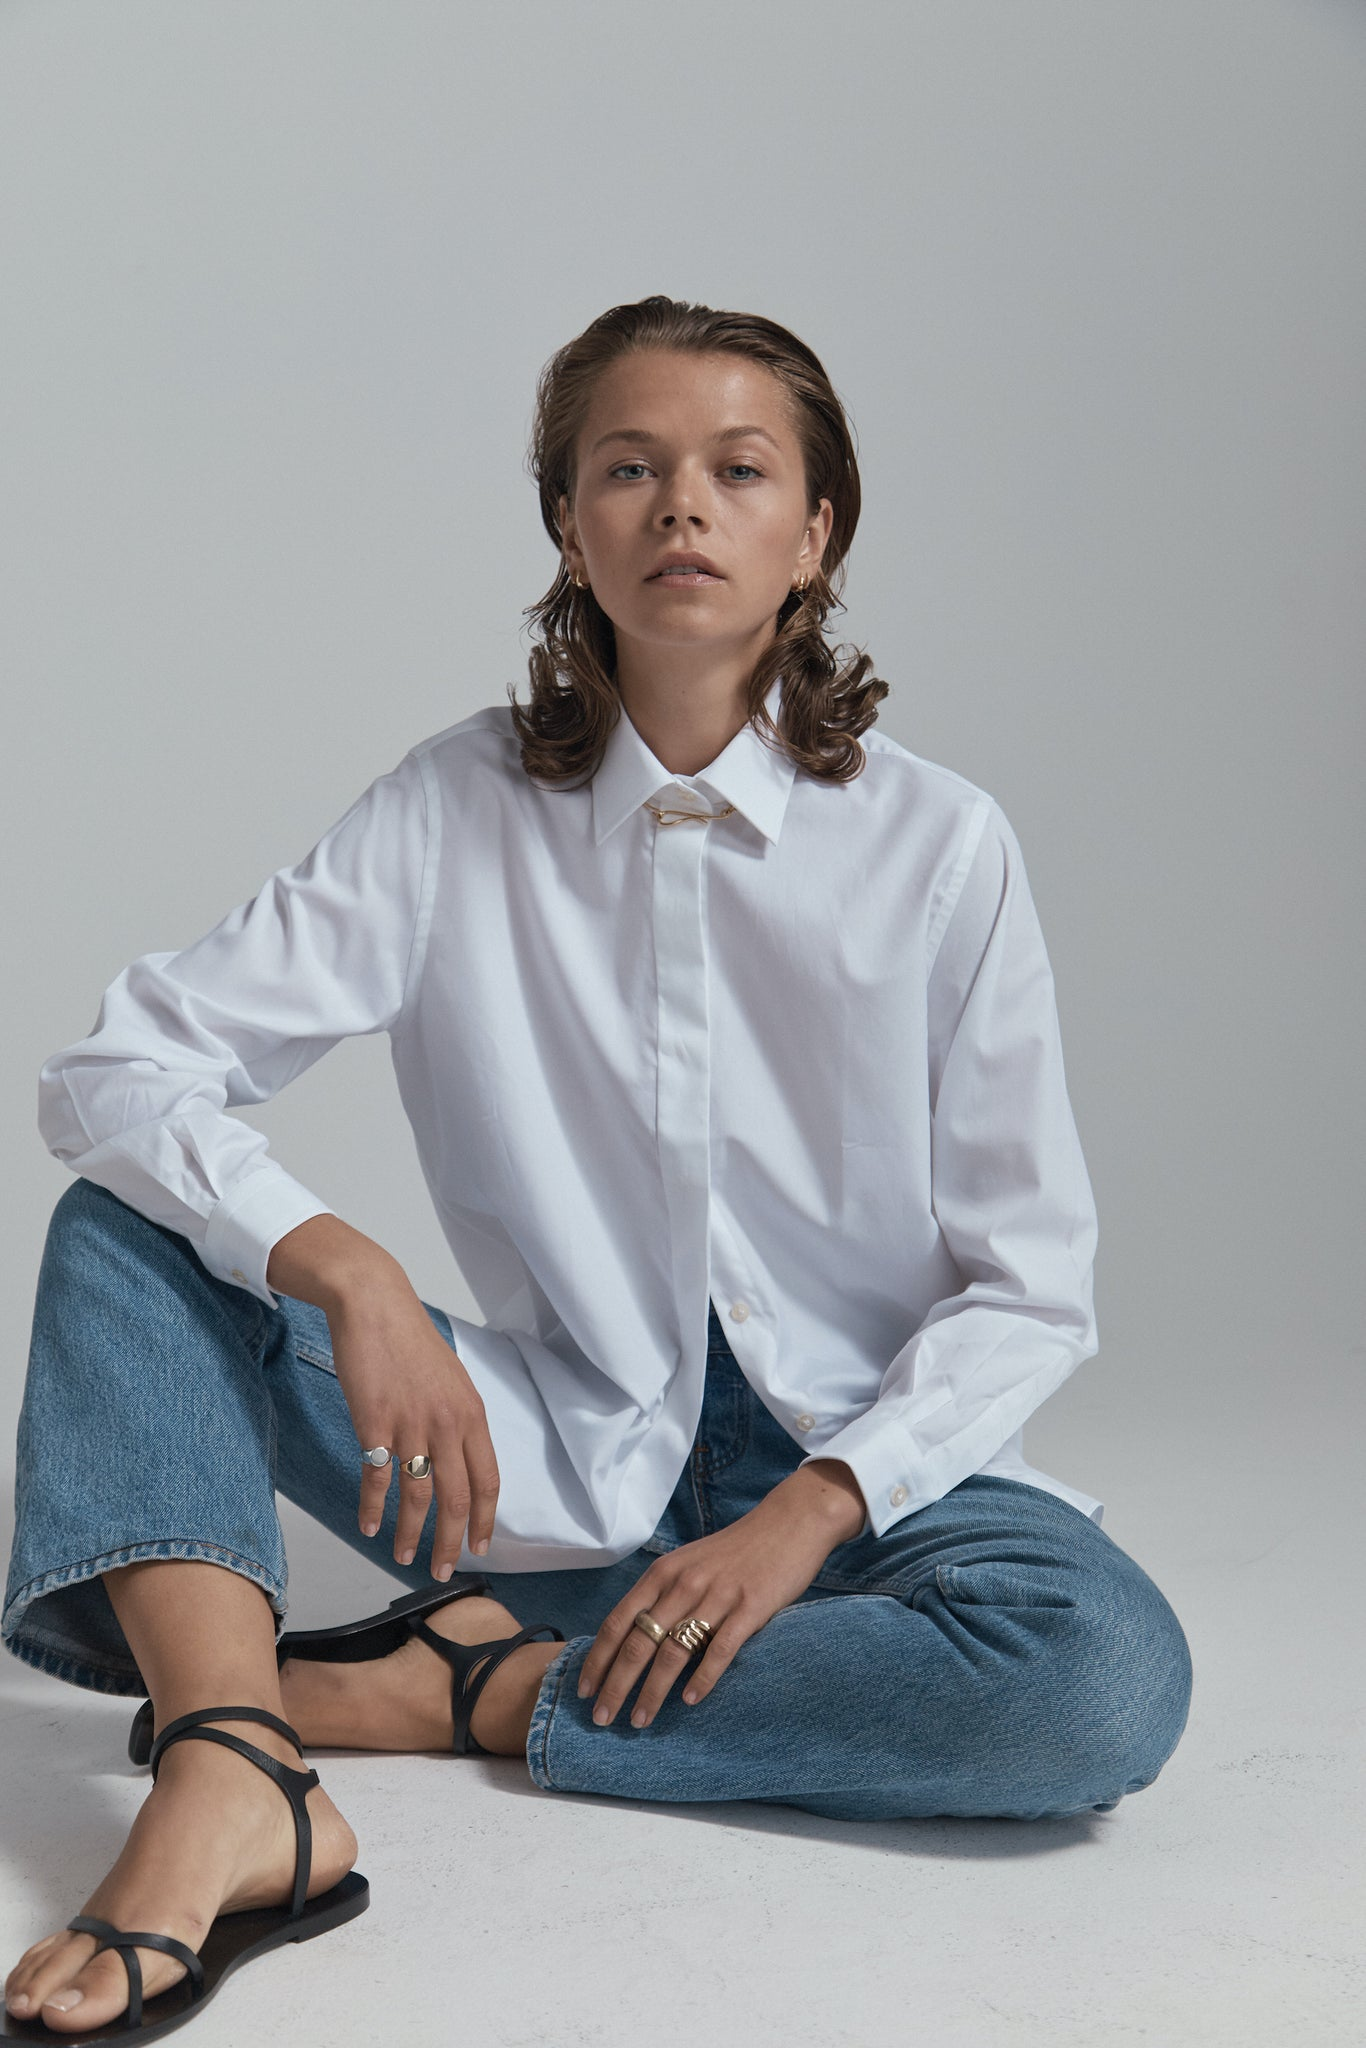 white shirt sitting